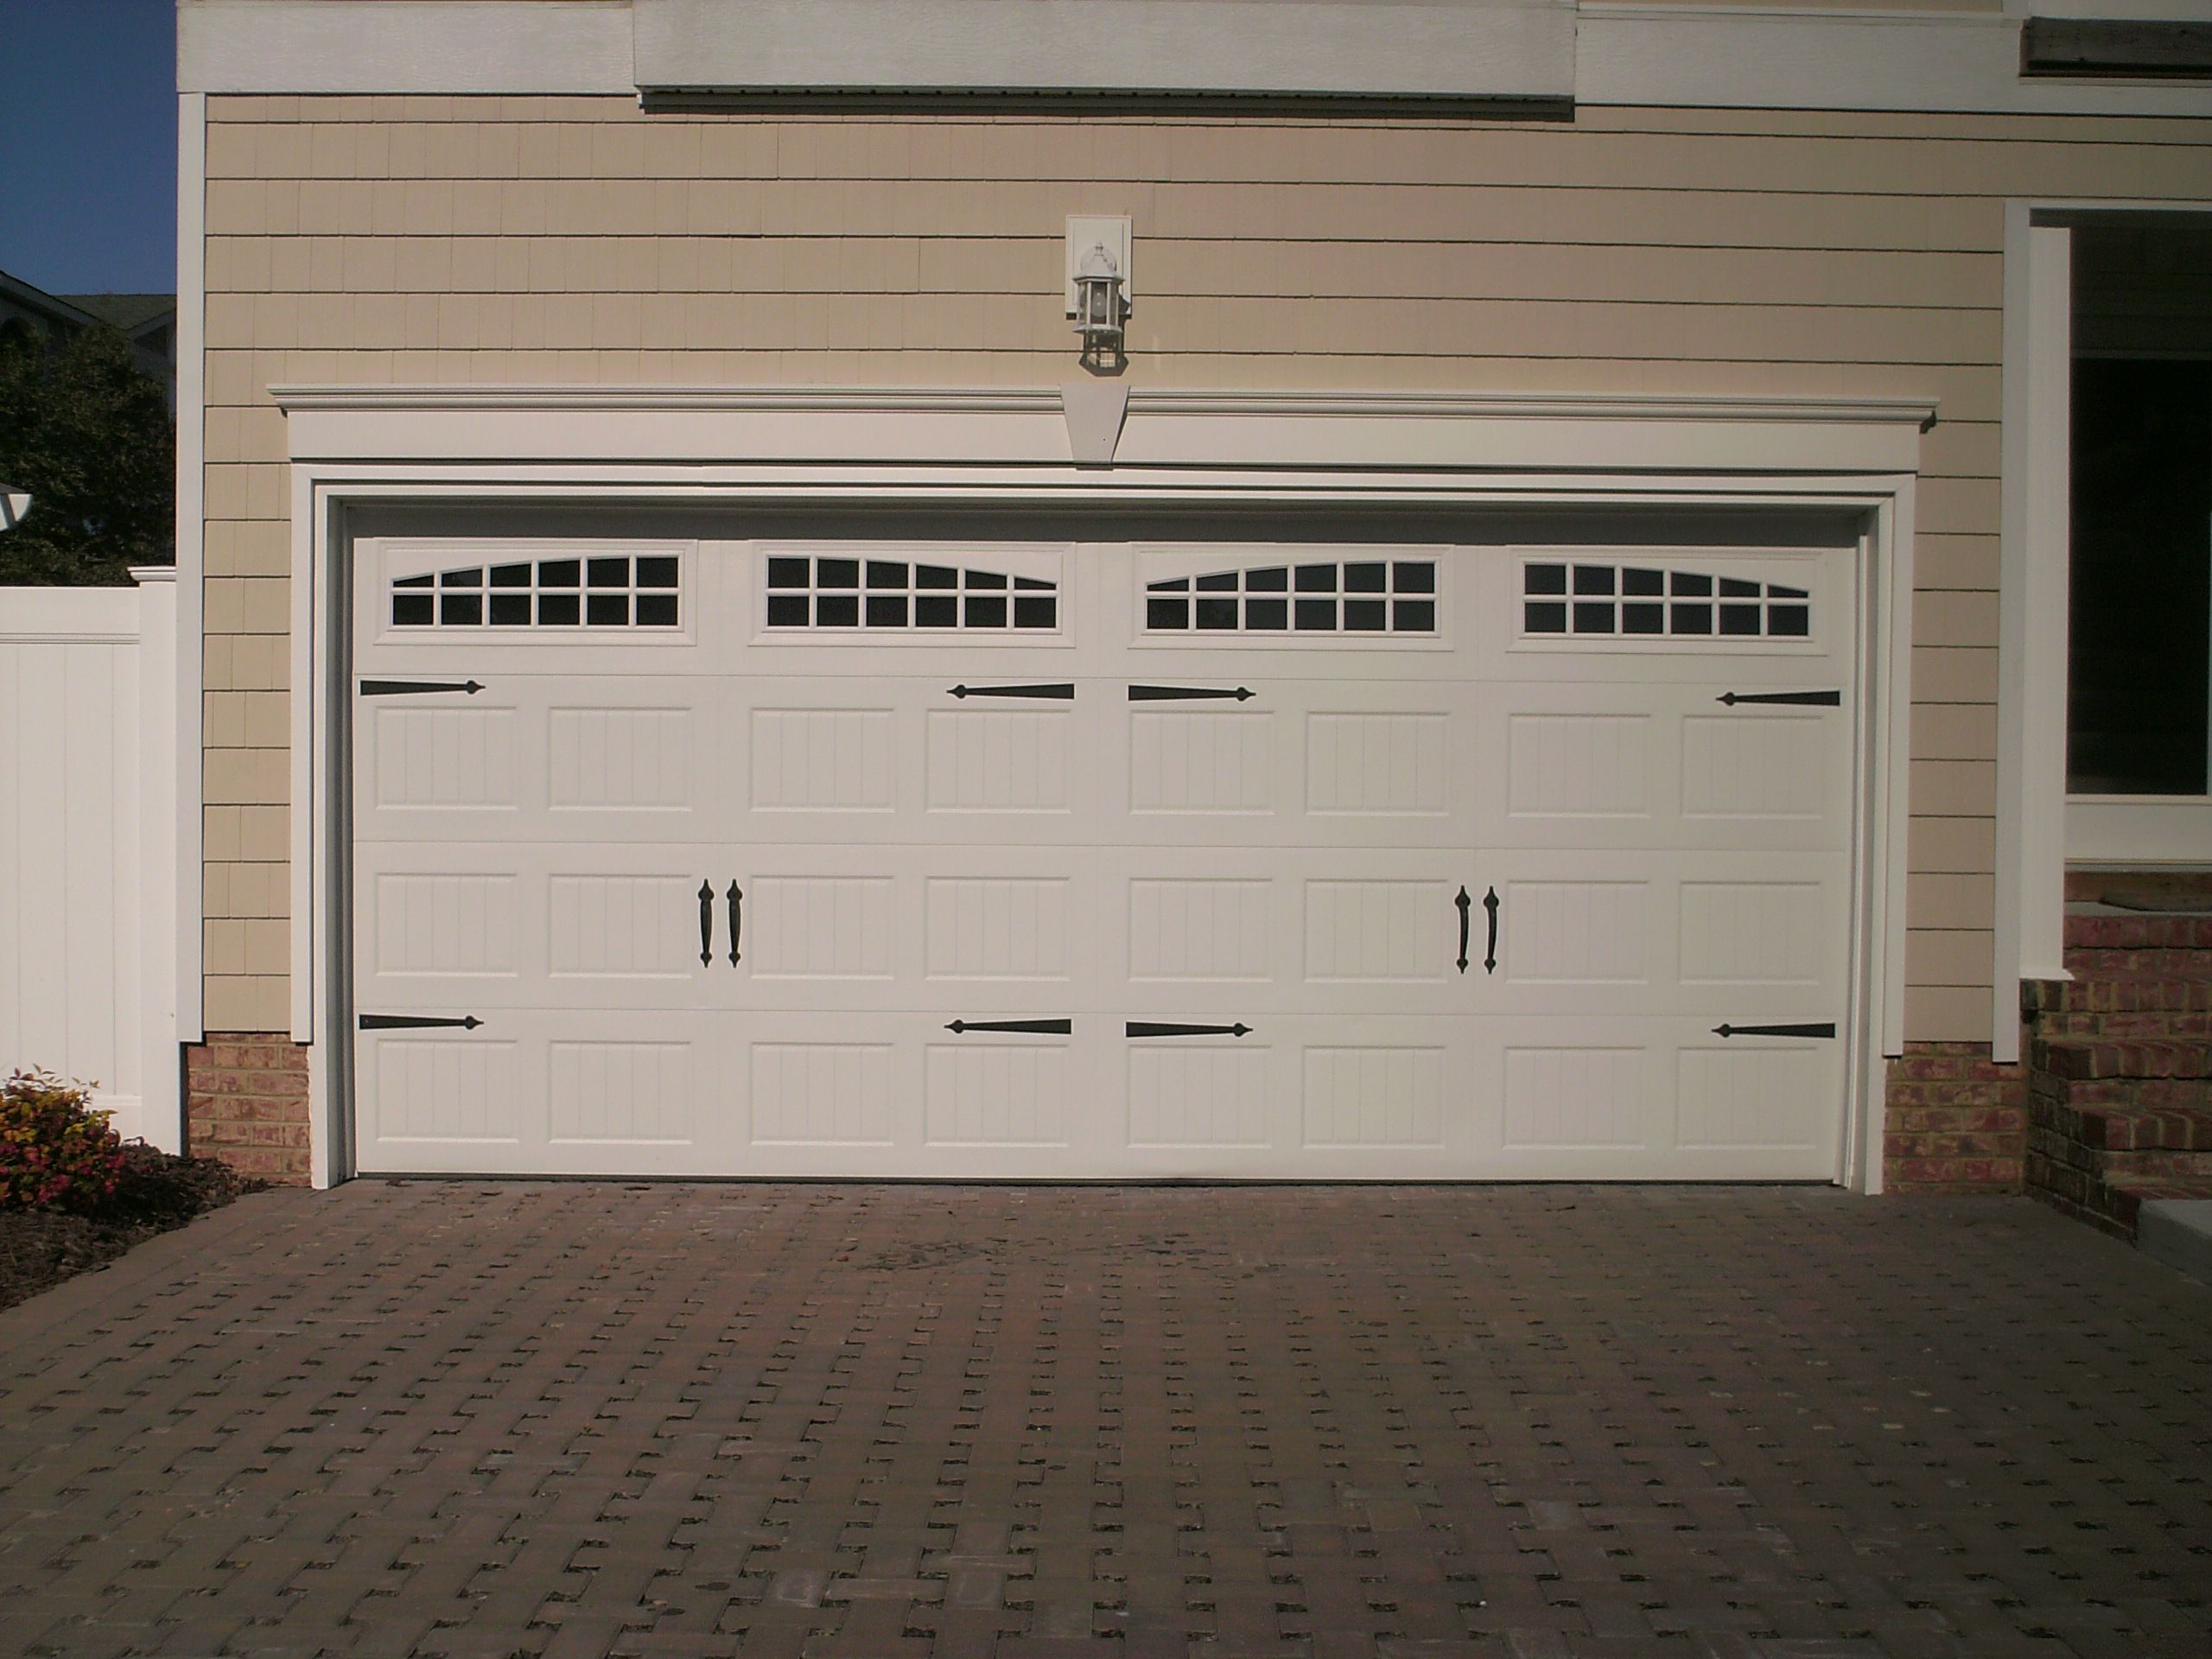 Garage doors sizes available - Best 25 Garage Door Styles Ideas On Pinterest Garage Doors Craftsman Outdoor Lighting And Wooden Garage Doors